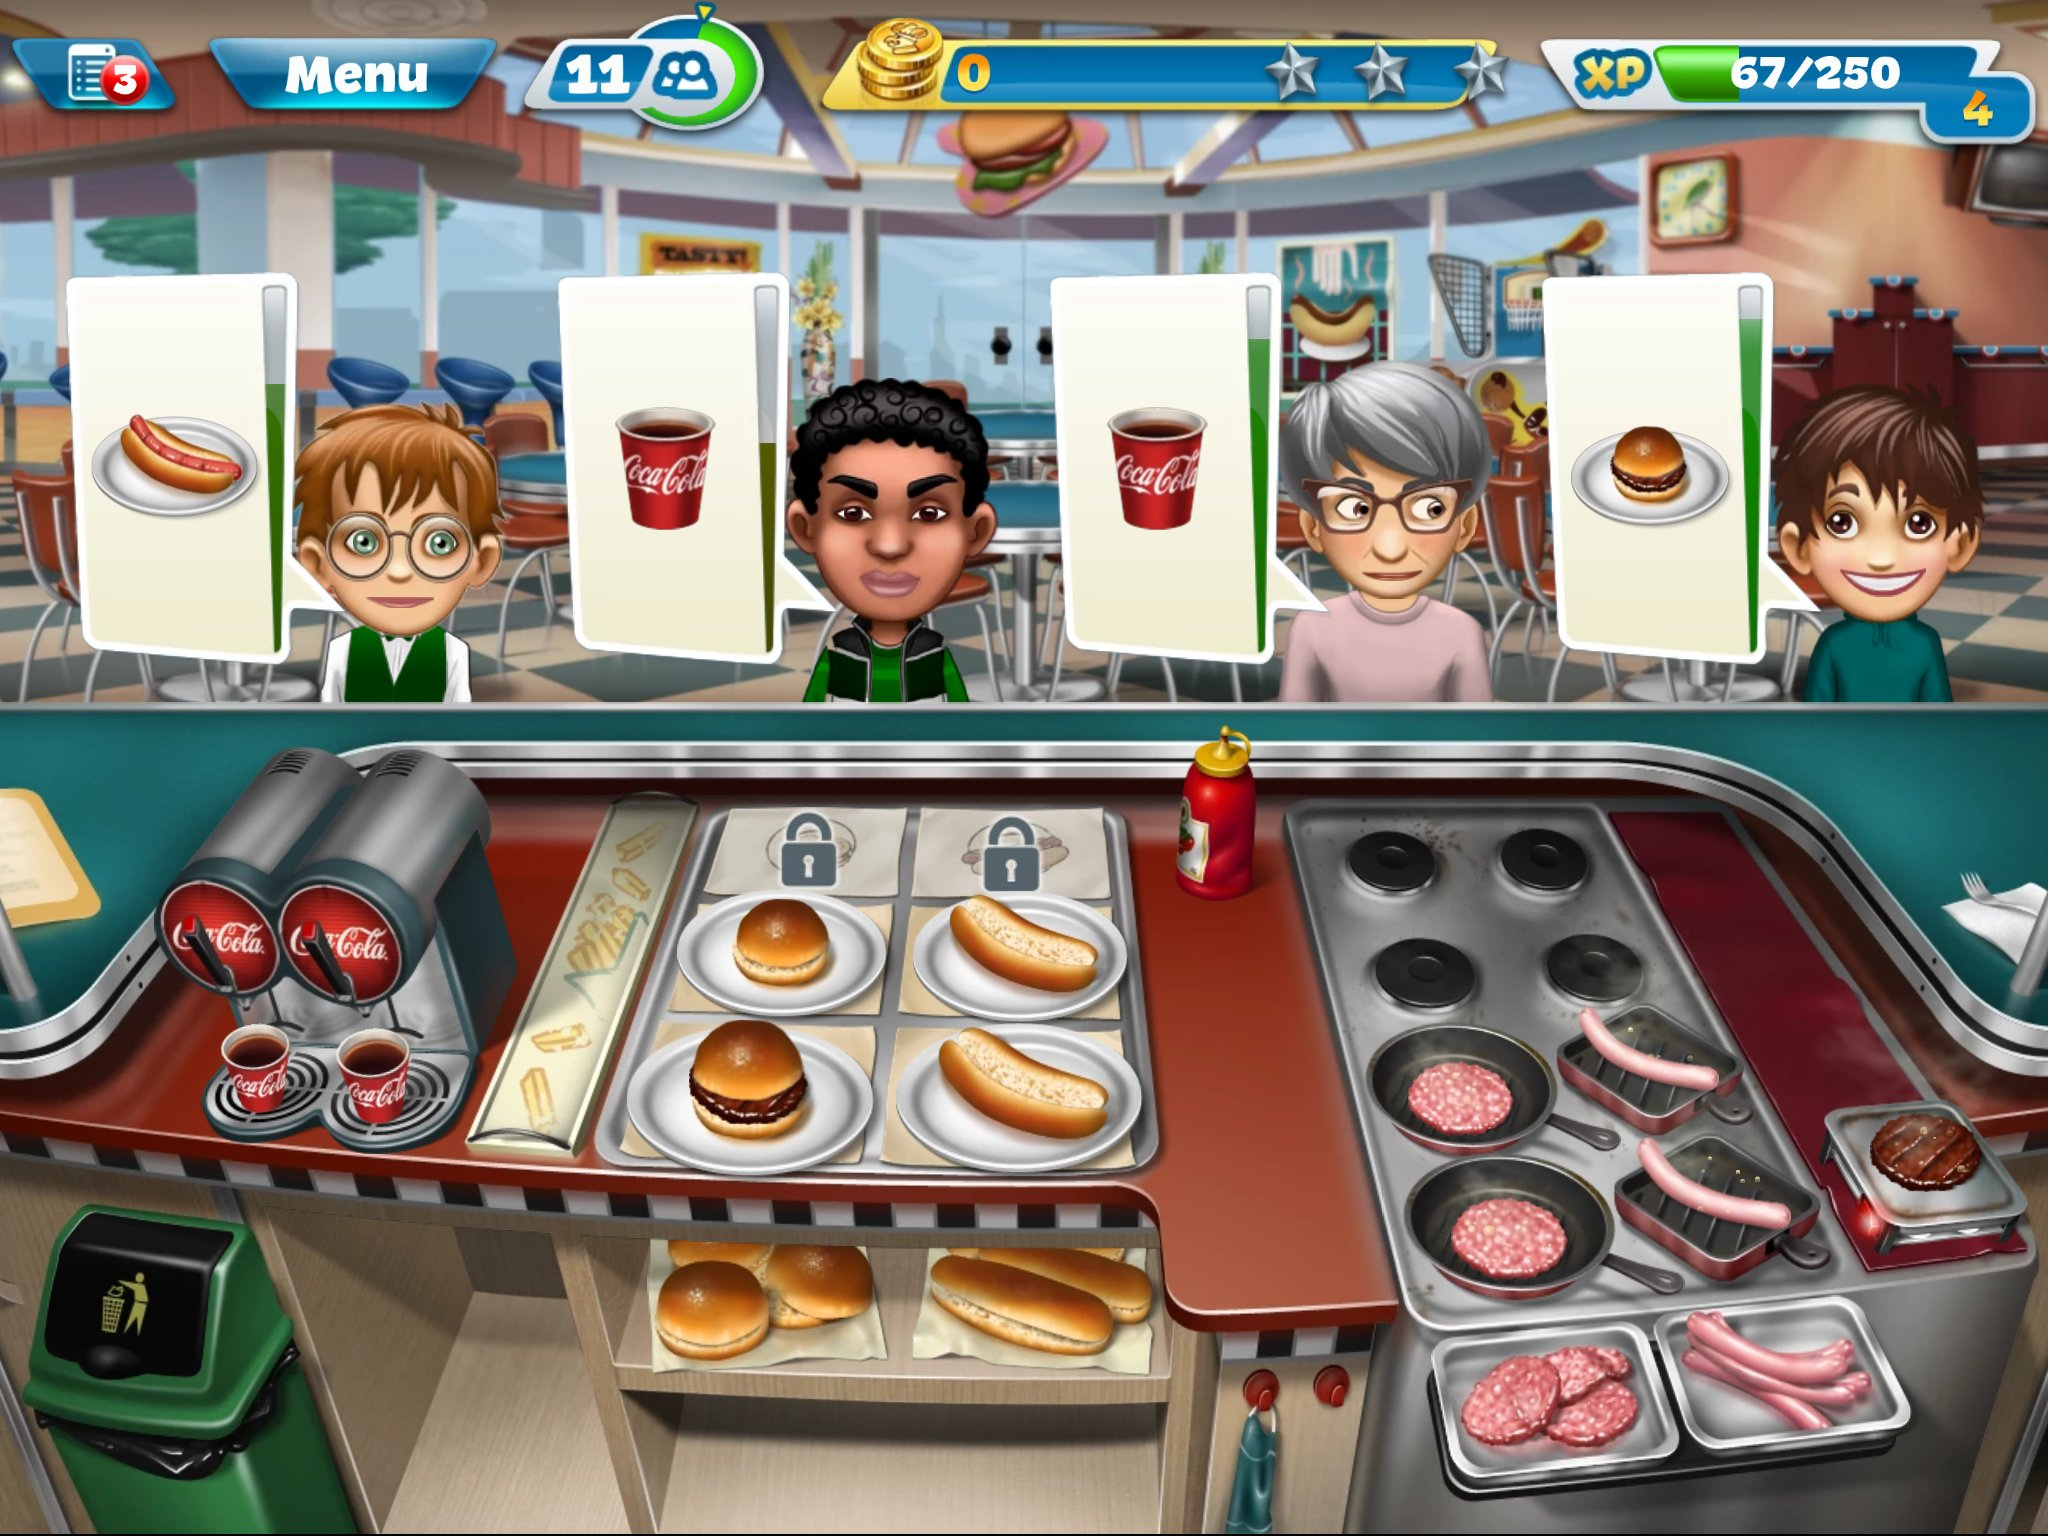 Cooking Games - Y8 Games : Free online games at Y8.com